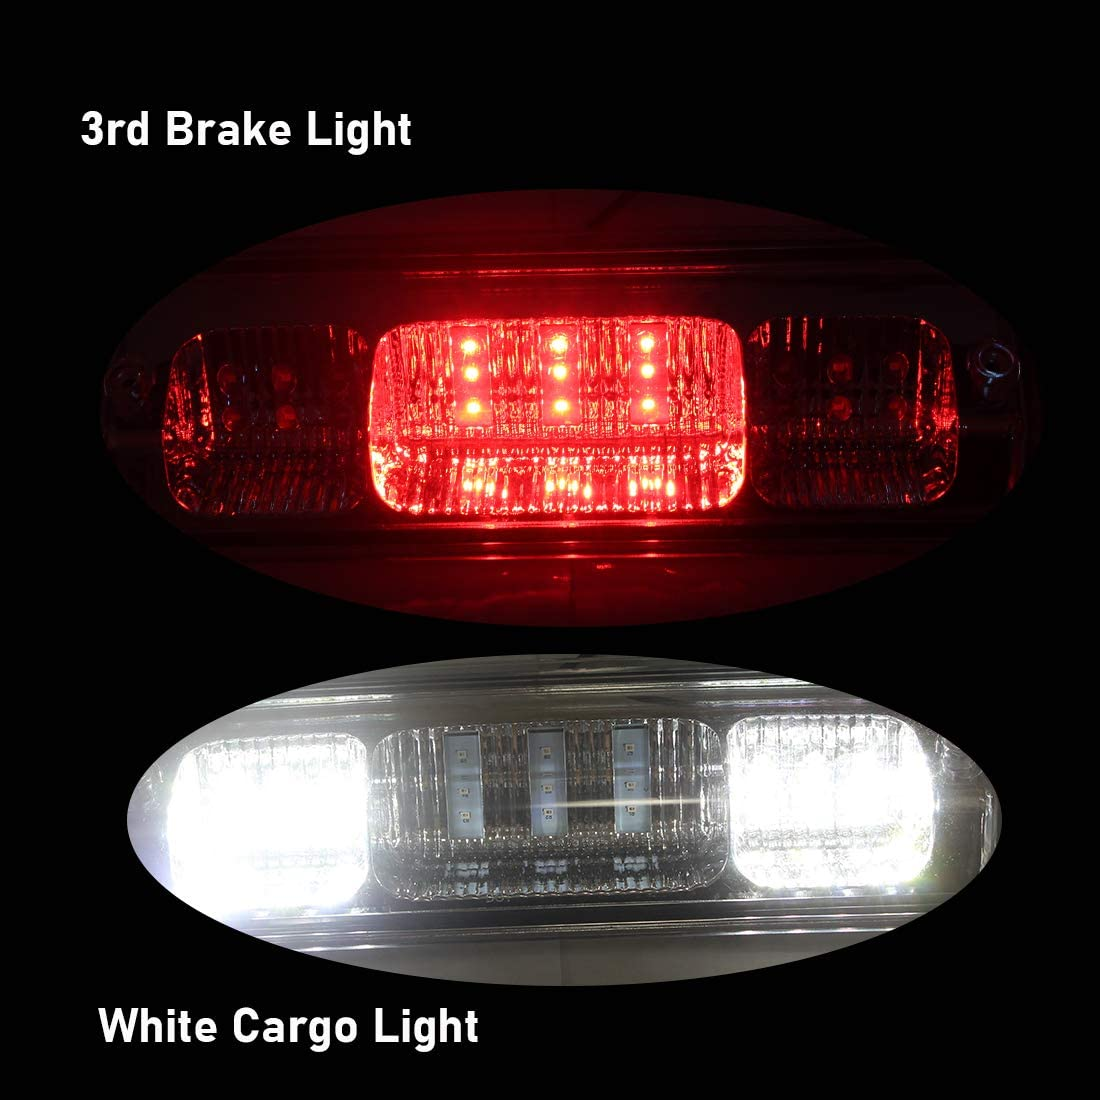 07-10 Ford Explorer Sport Trac Tail High Mount Stop Light Assembly NPAUTO LED Third 3rd Brake Light Cargo Lamp Replacement for 2004-2008 Ford F150 Lobo 06-08 Lincoln Mark LT